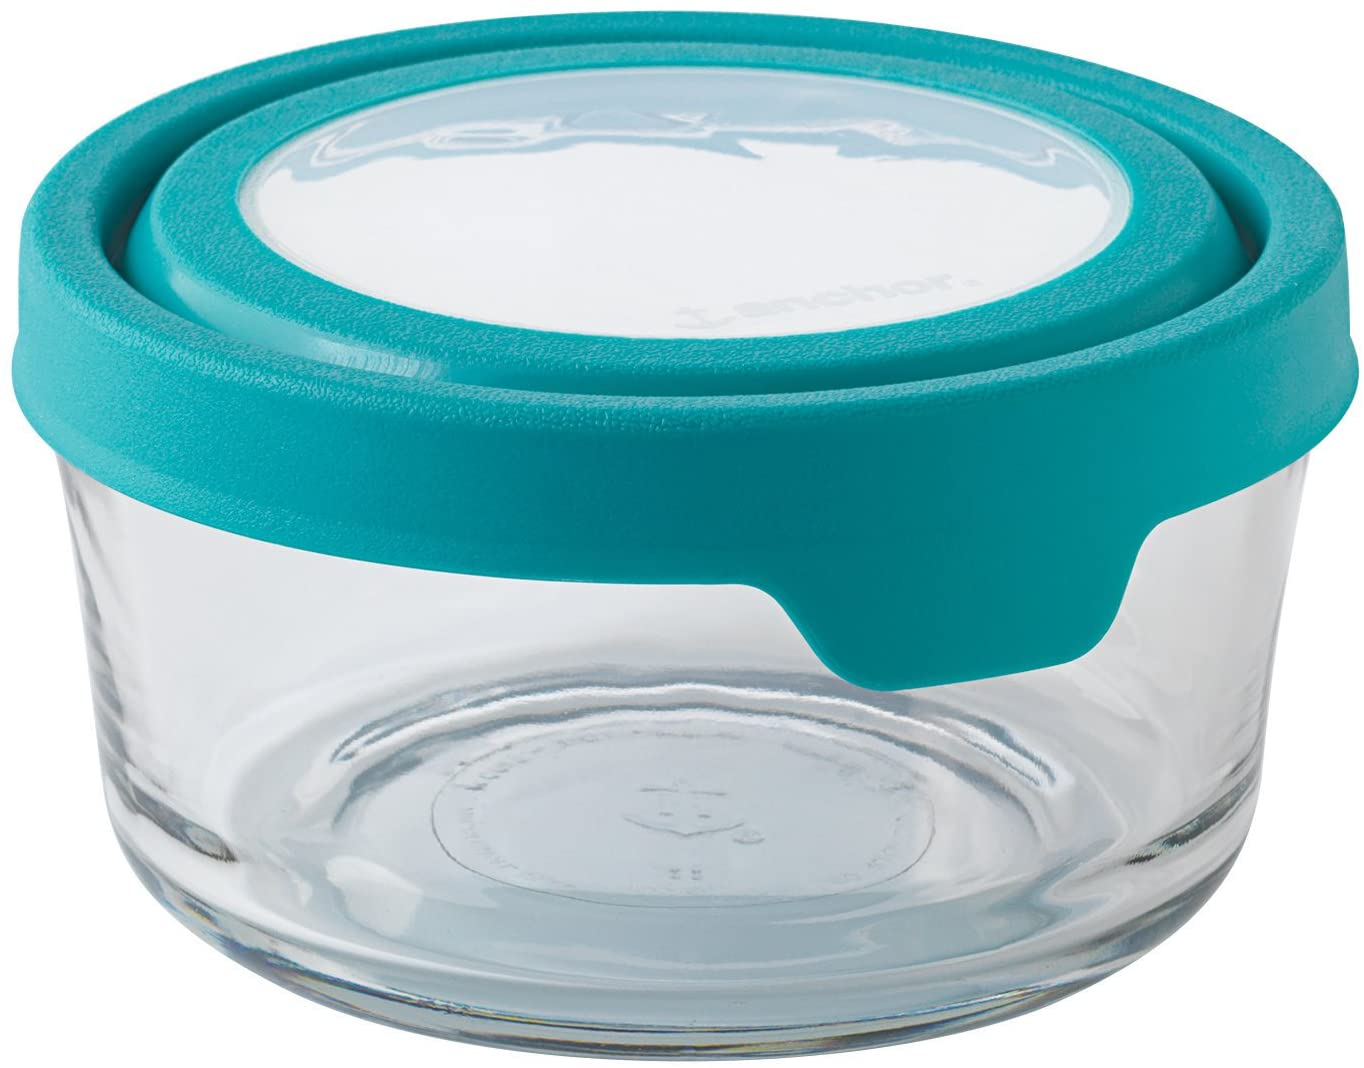 Anchor Hocking TrueSeal Glass Food Storage Container with Lid, Teal, 4 Cup